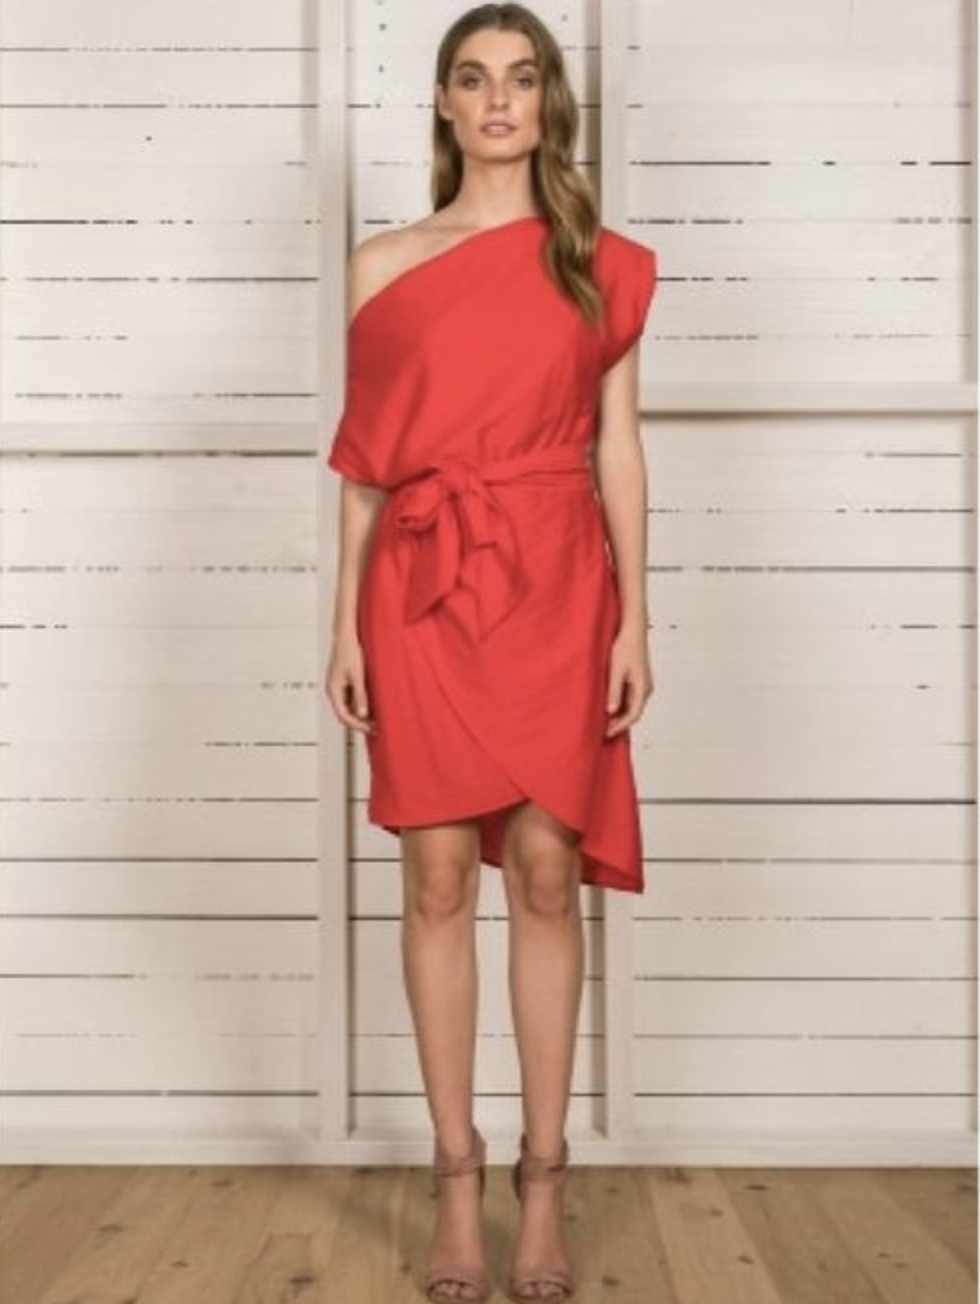 The Rise Dress from Wish